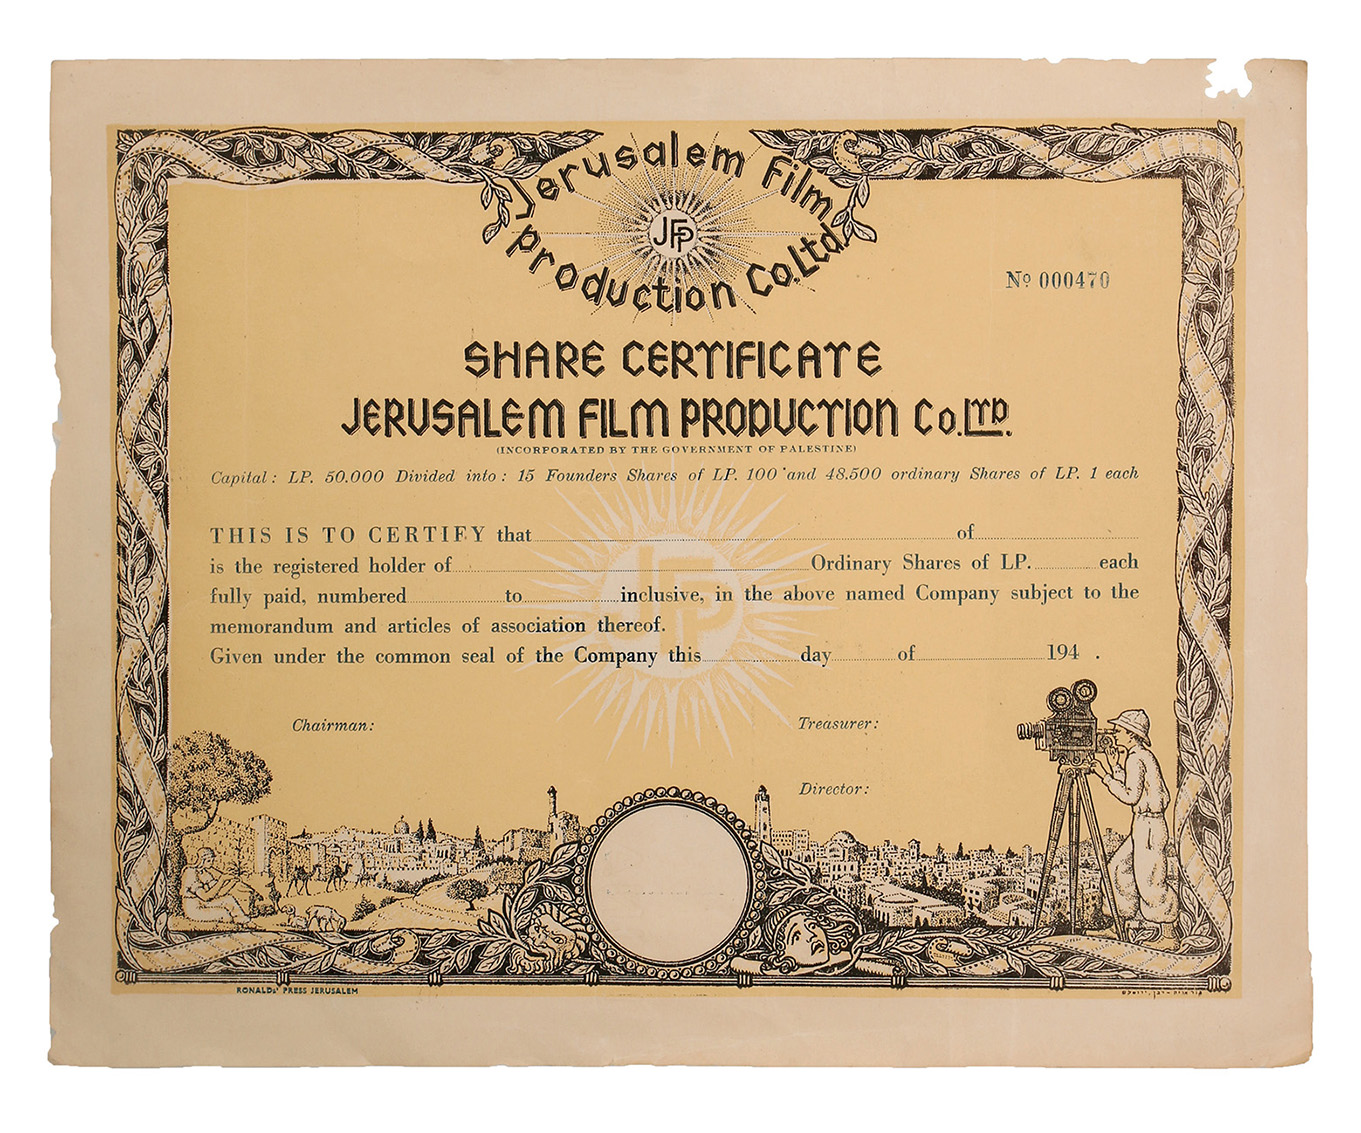 Share Certificate Designed by Meir GurAryeh and Zeev Raban